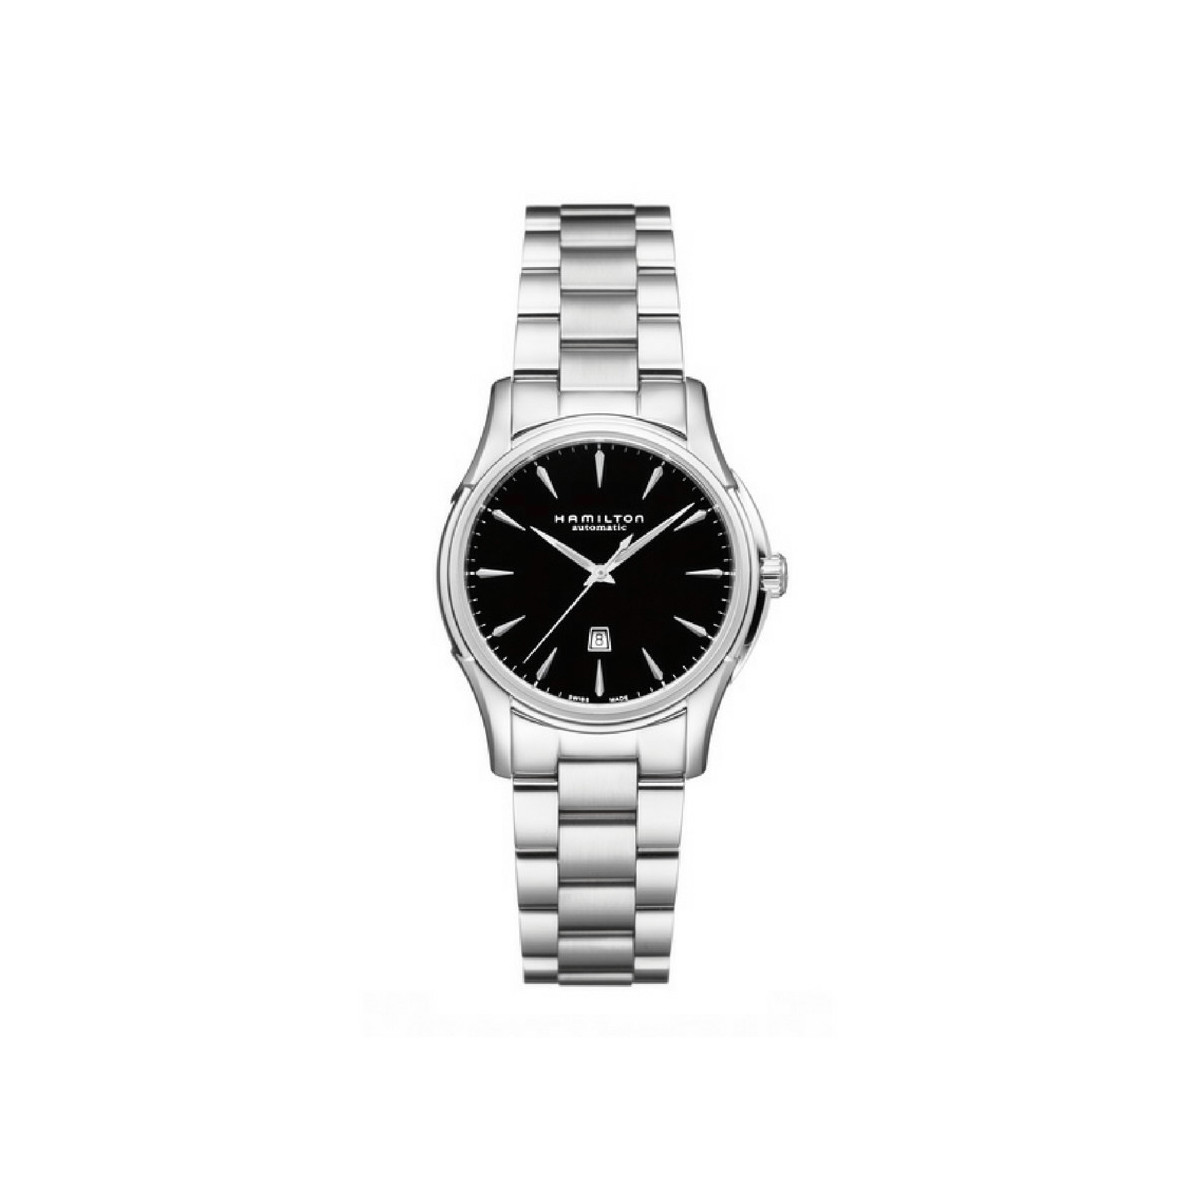 HAMILTON AUTOMATIC WATCH FOR WOMEN